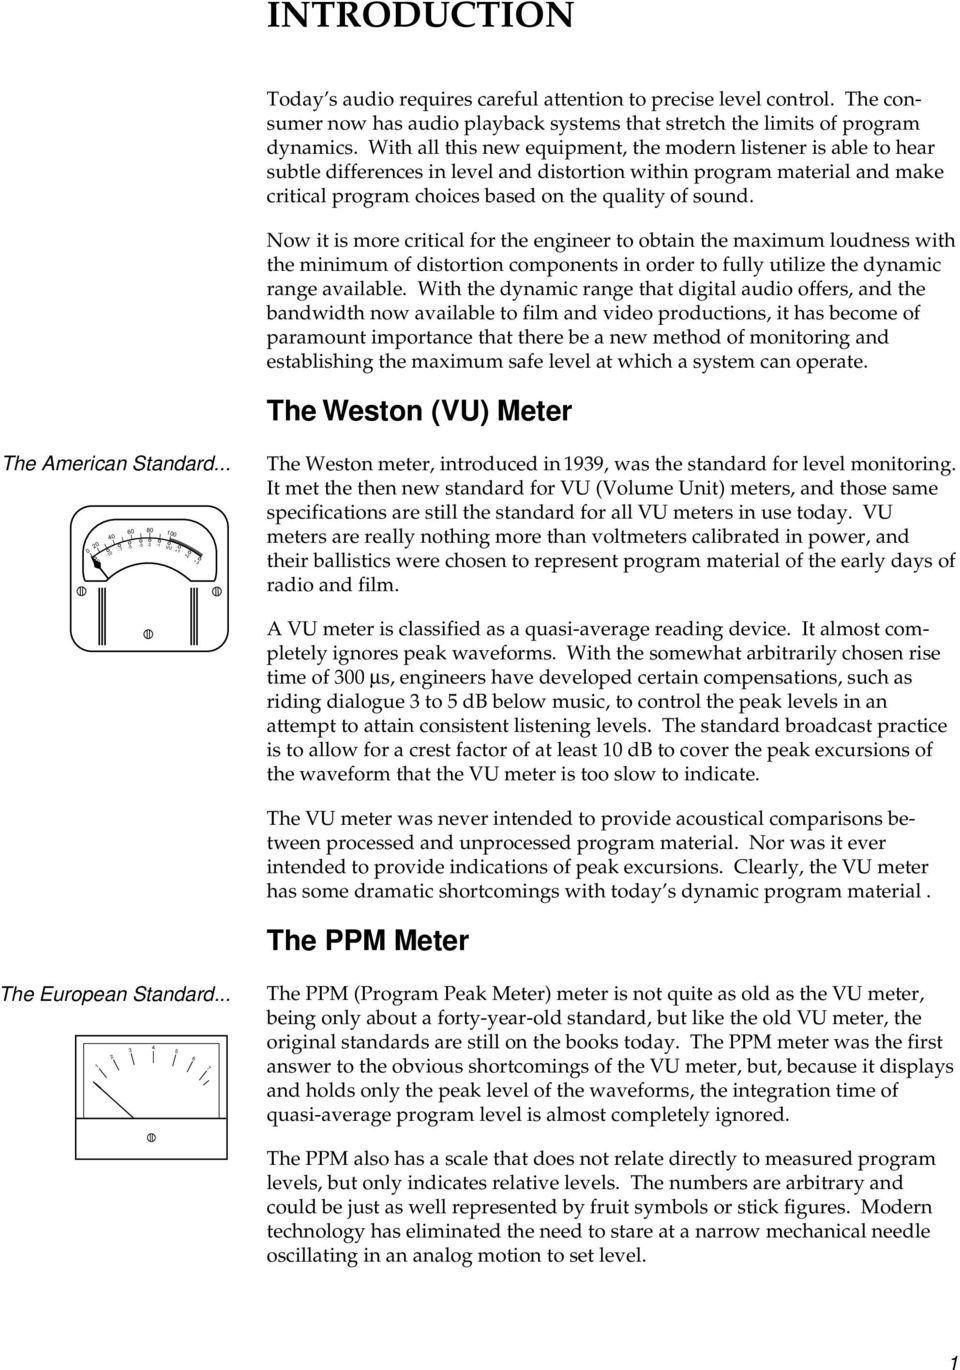 Technical Instruction Manual Pdf This Is A Simple Circuit Diagram Of 5led Audio Vu Meter Using Ic Now It More Critical For The Engineer To Obtain Maximum Loudness With Minimum